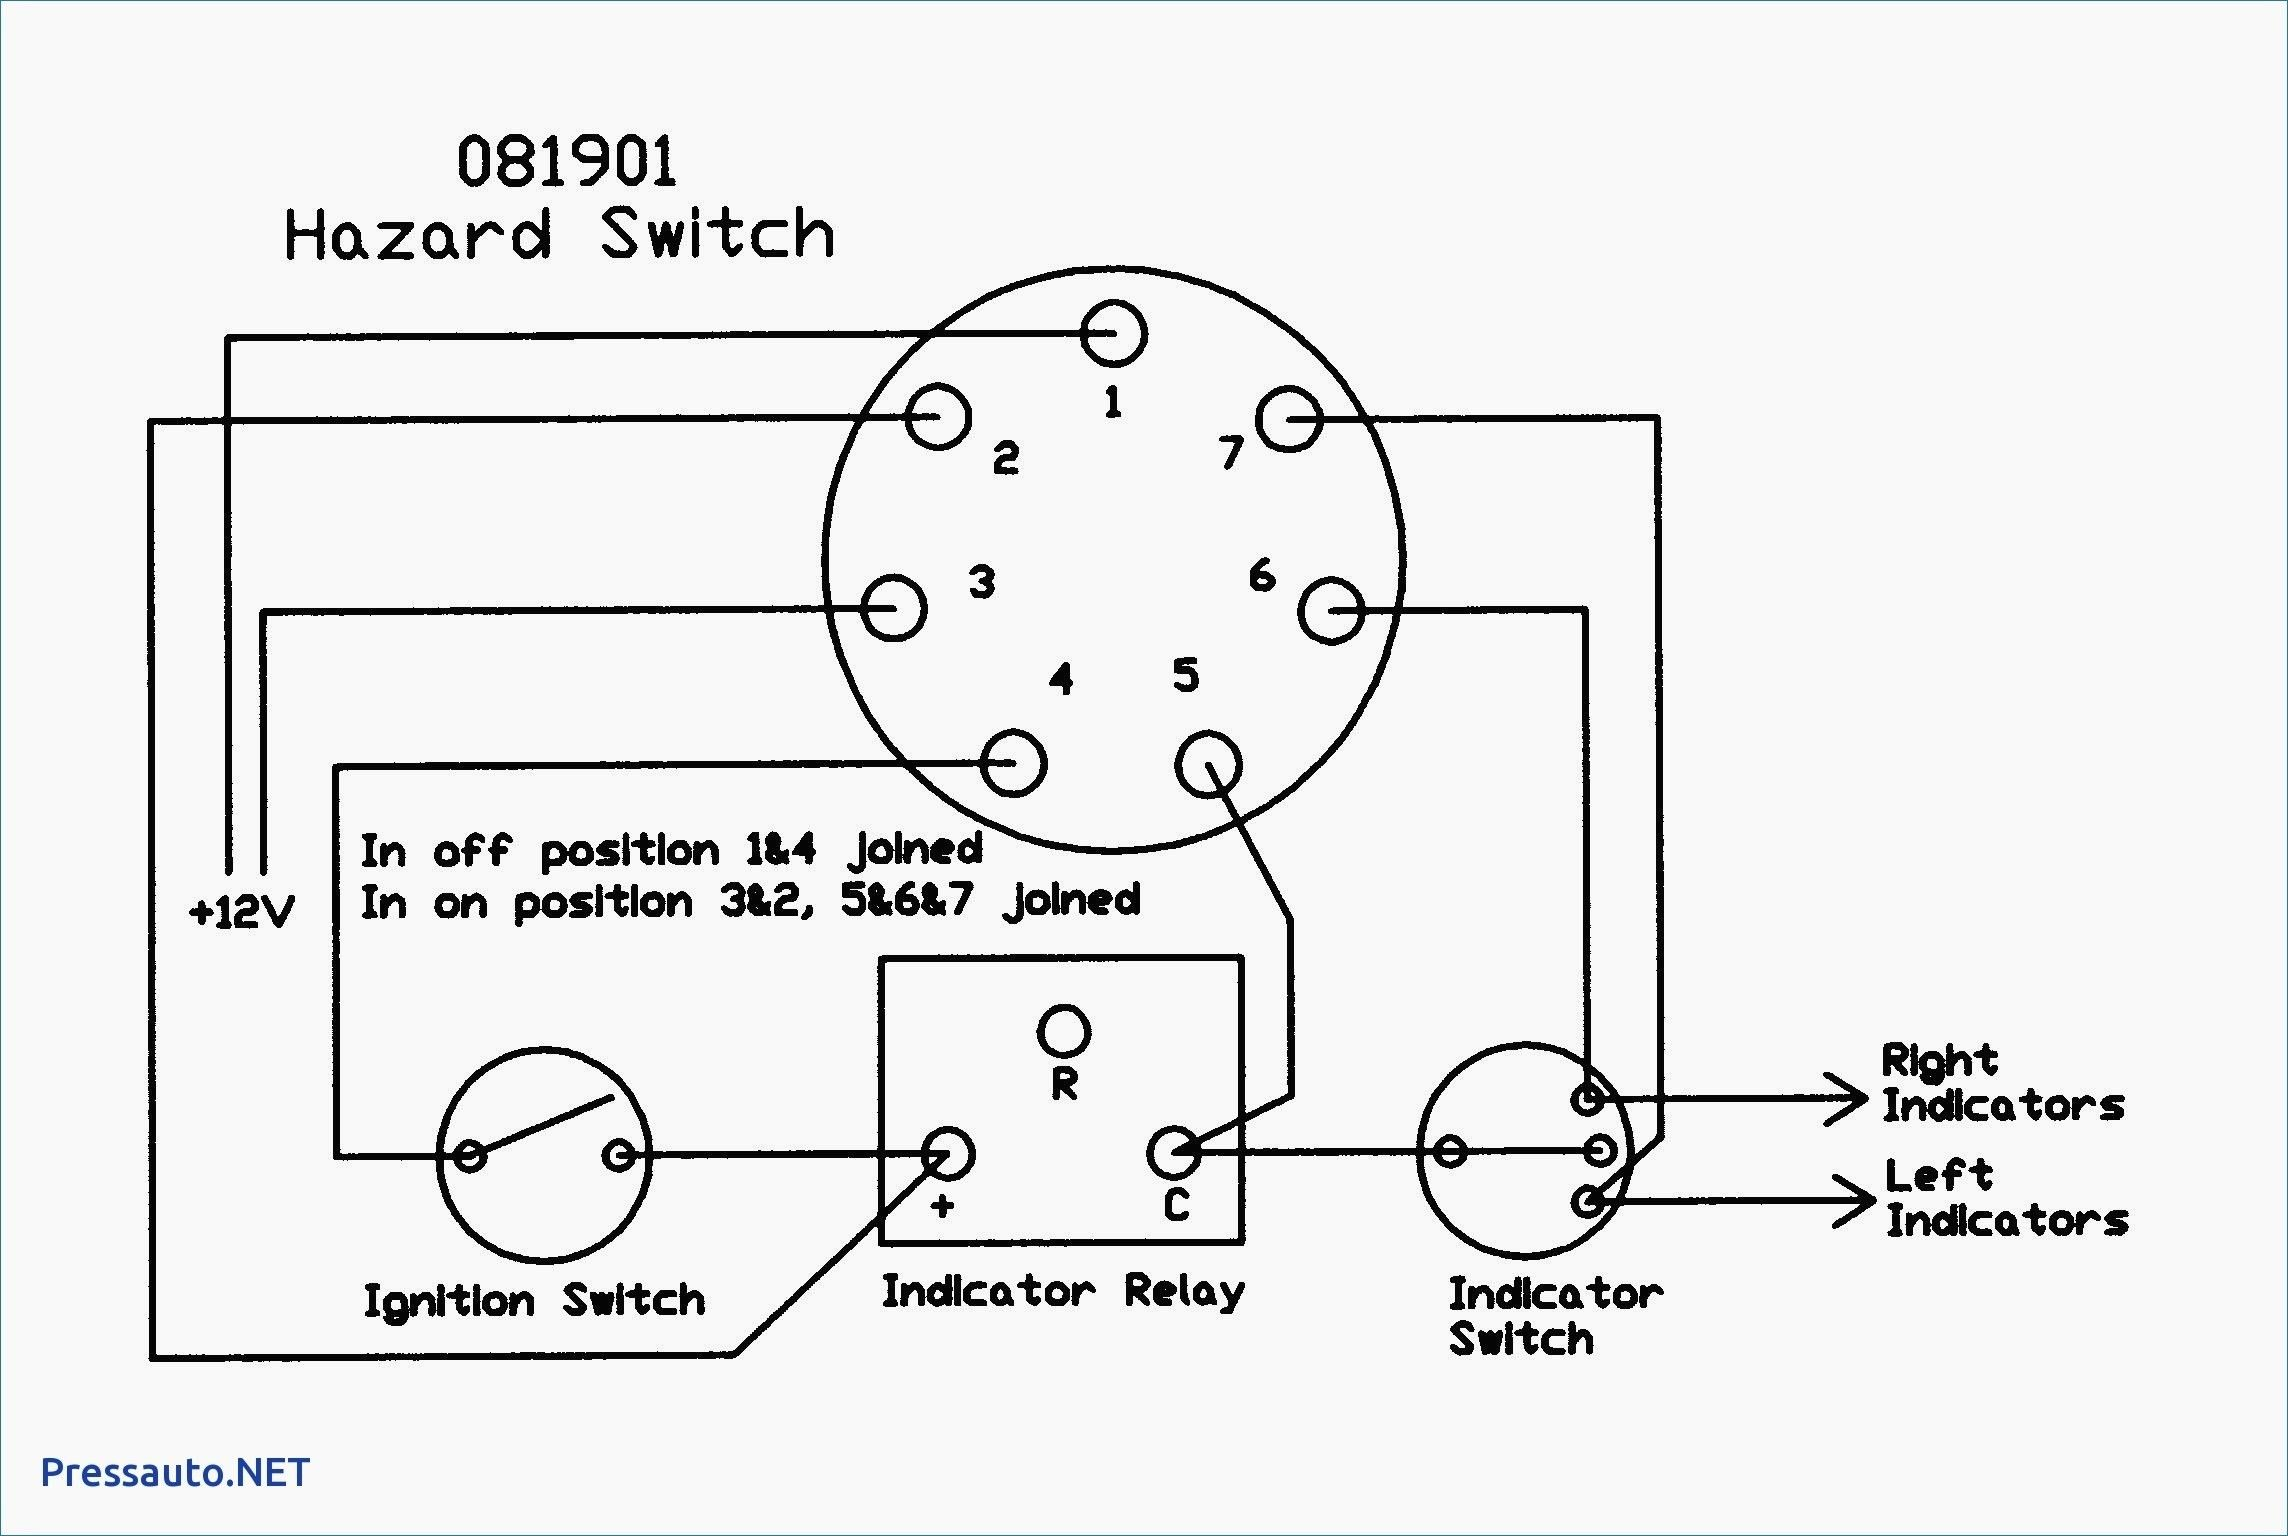 Awesome Wiring Diagram For Motorcycle Hazard Lights